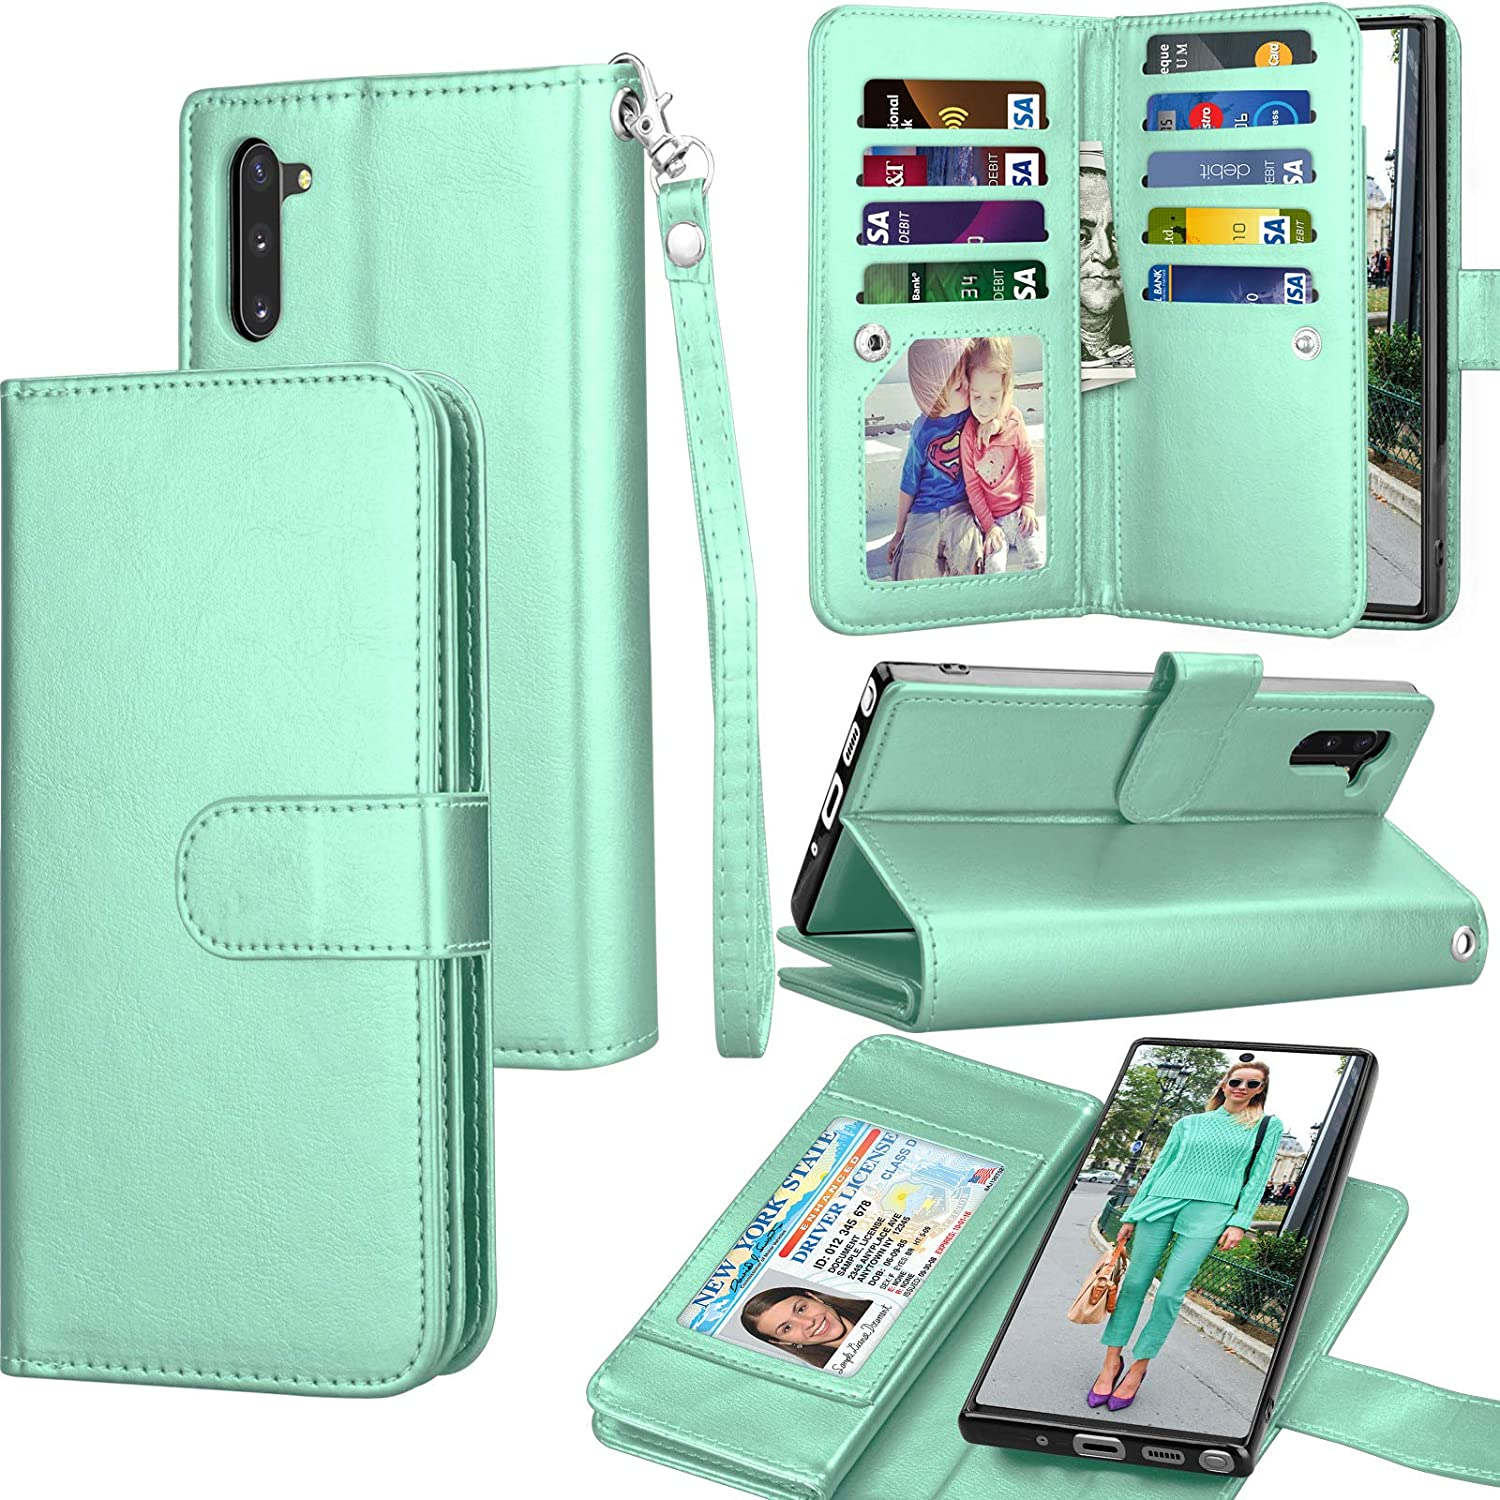 Galaxy Note 10 Case, Galaxy Note 10 Wallet Case, Luxury Cash Credit Card Slots Holder Carrying Folio Flip PU Leather Cover [Detachable Magnetic Hard Case] Kickstand for Samsung Note10 [Turquoise]